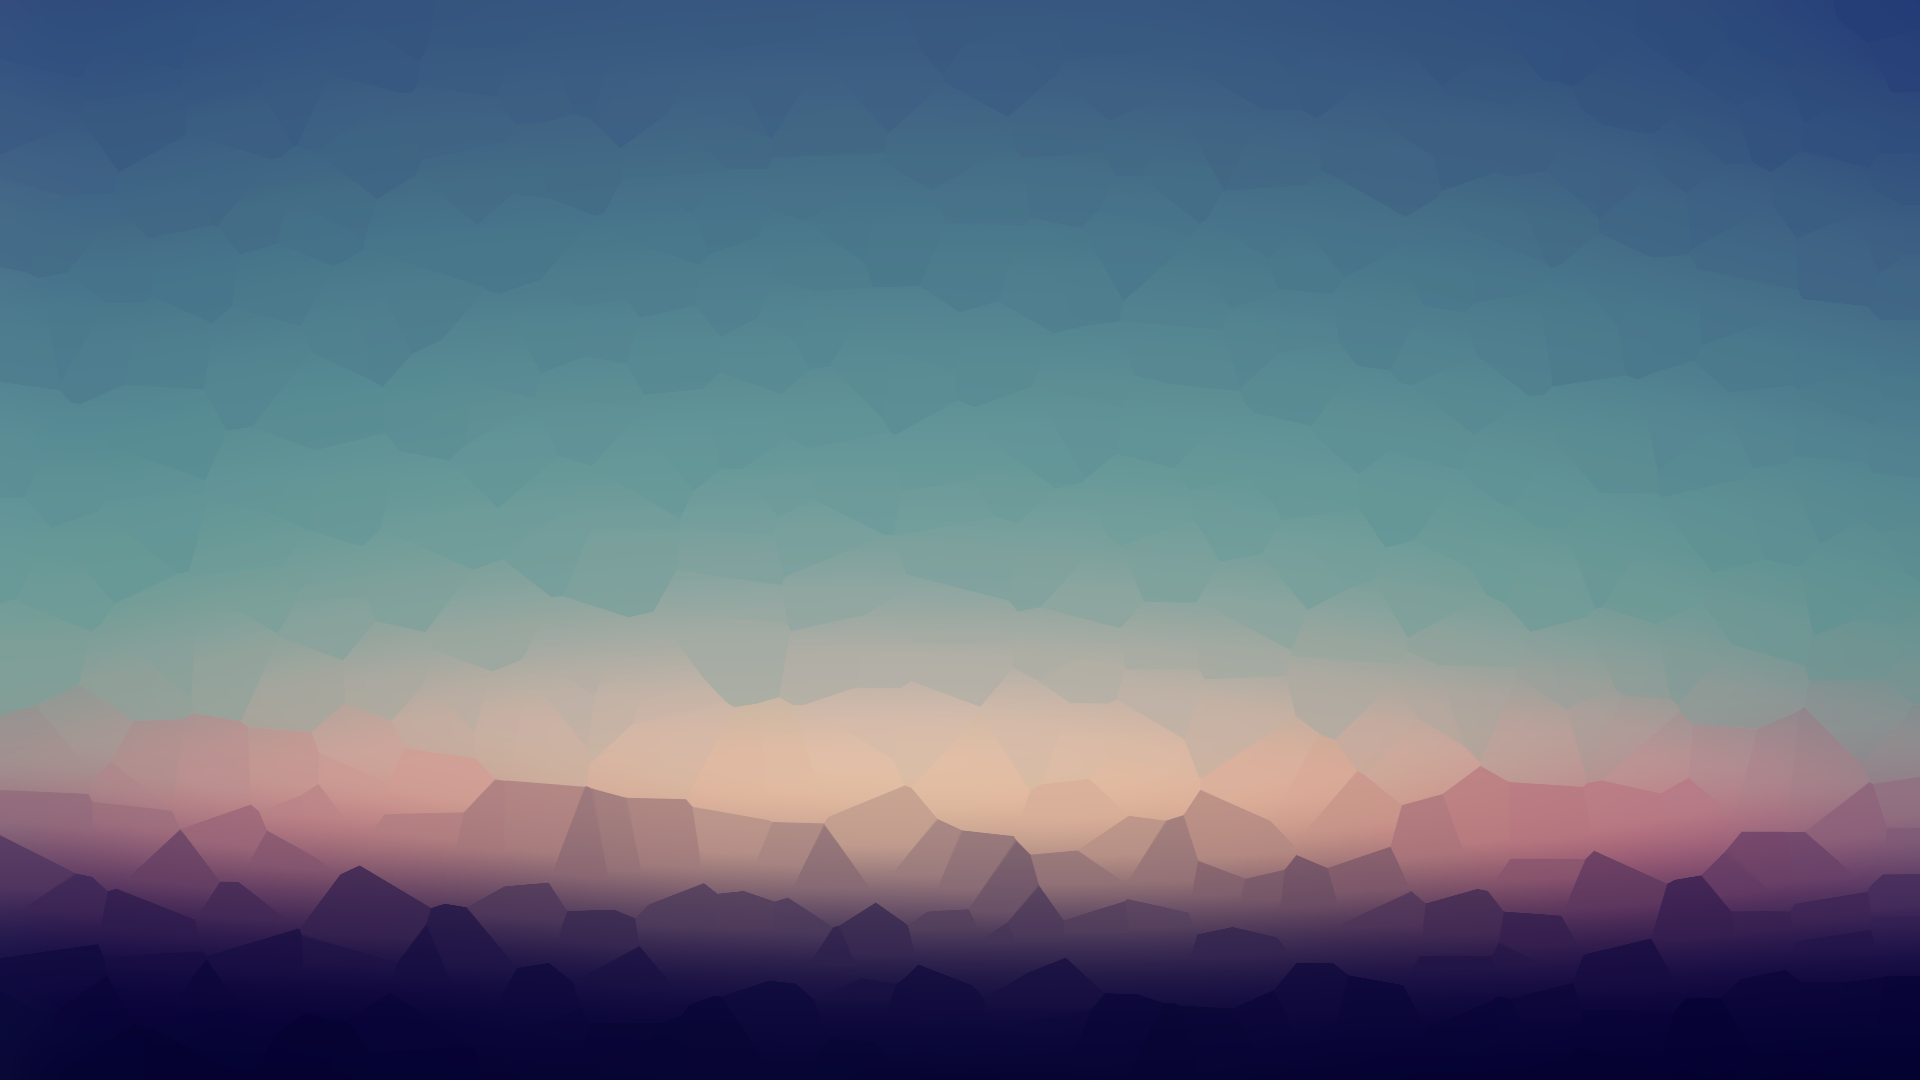 Abstract Mountains Simple Wallpaper 2984723 Wallbase Cc Abstract Wallpaper Simple Wallpapers Wallpaper Gallery